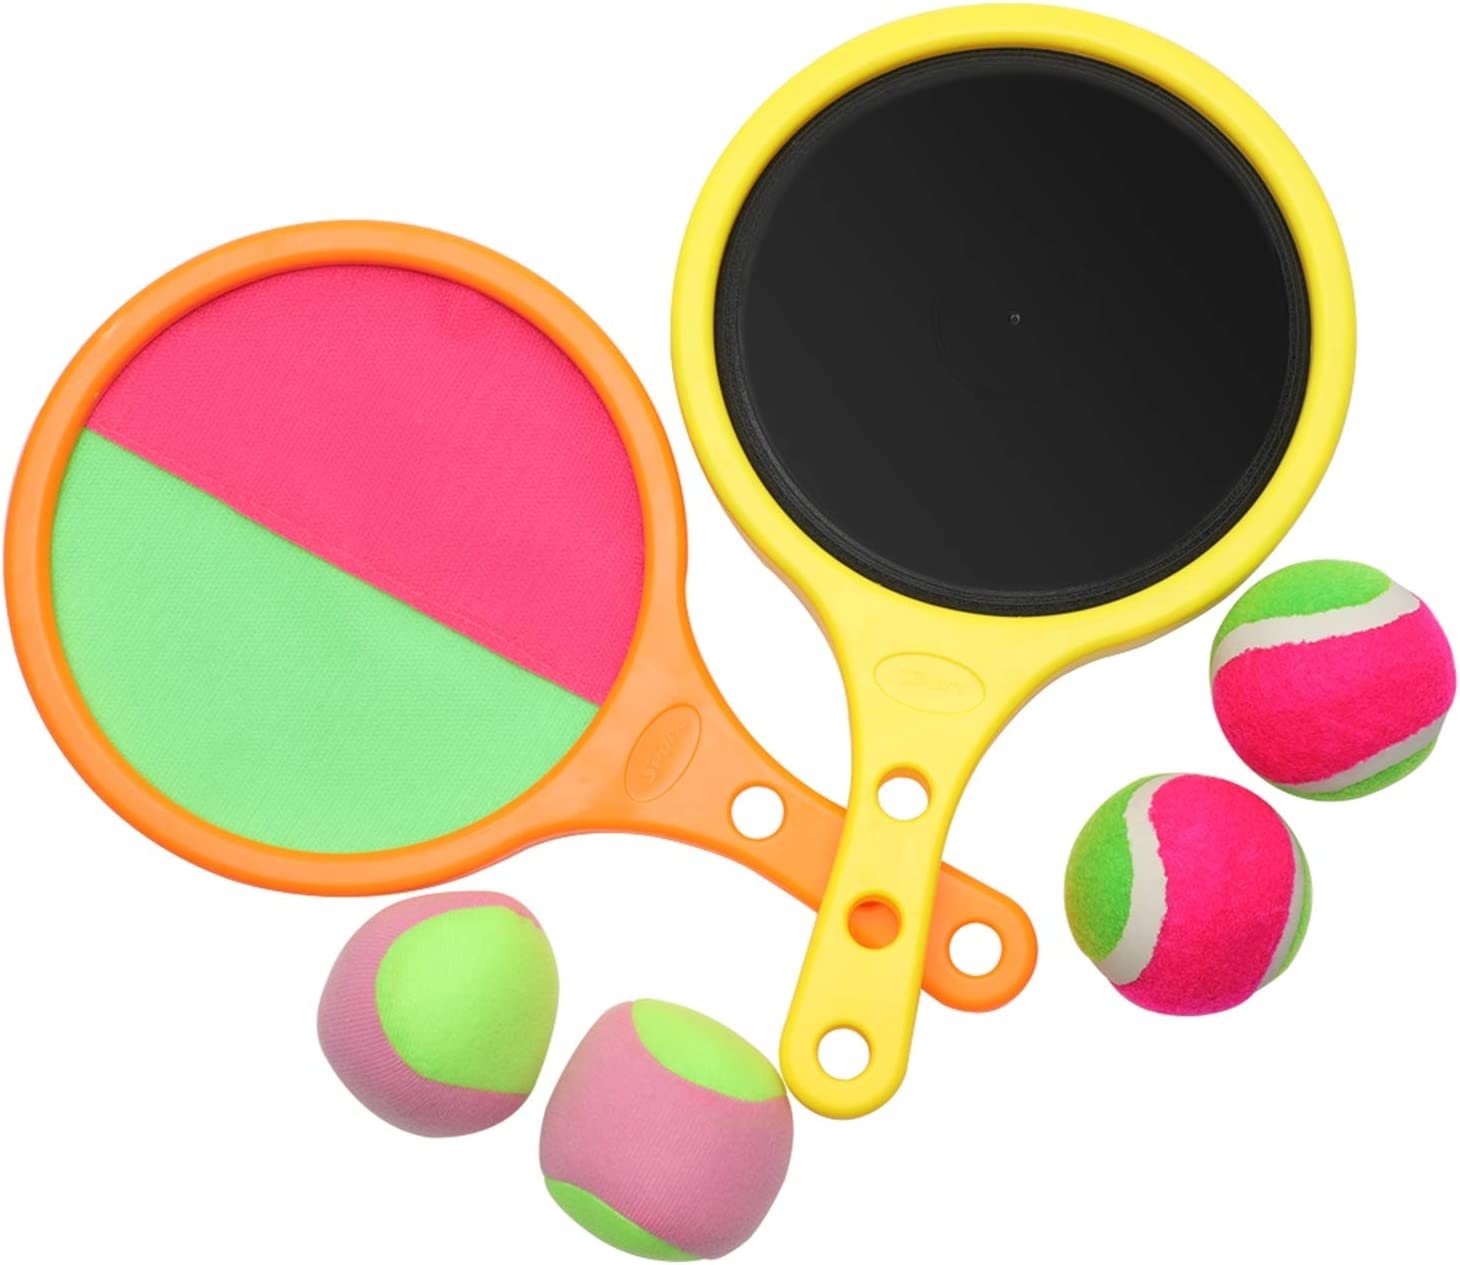 NUYYUN Paddle Catch Ball Toss Game Set,Toss Ball Catch Game,Outdoor Beach Sports Sticky Ball Game Toy for 3-8 Years Old Boy Girl Kids/Adults and Family Birthday Gifts (2 Paddle ,4 Ball)